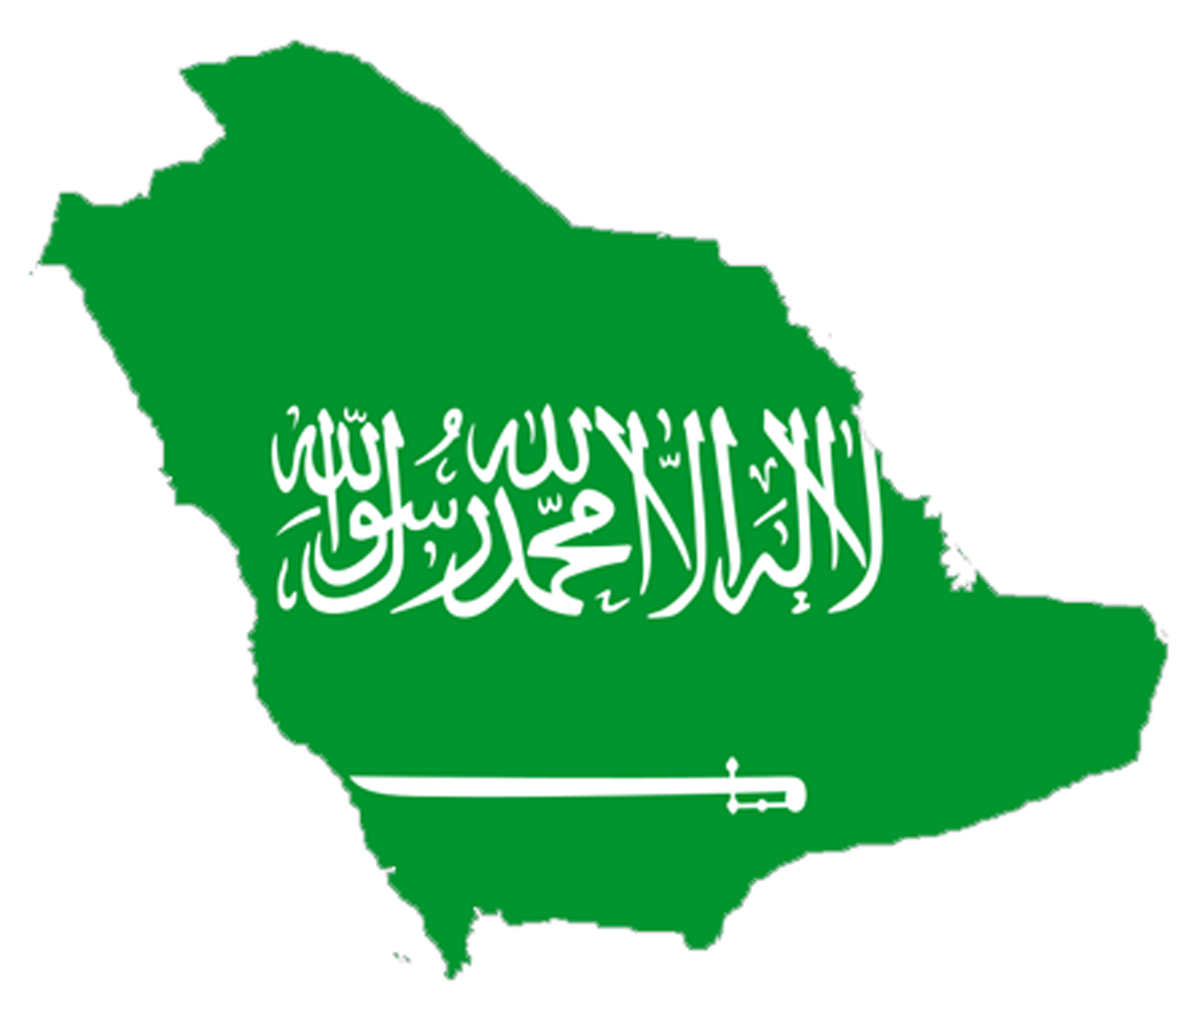 http://1.bp.blogspot.com/-srwgnf7LTpk/TdguNX7b0sI/AAAAAAAABGQ/hq4lfLkXm2c/s1600/Wallpapers+Flag+of+Saudi+Arabia+Saudi+Arabic+Flag+Graphics+%25283%2529.png